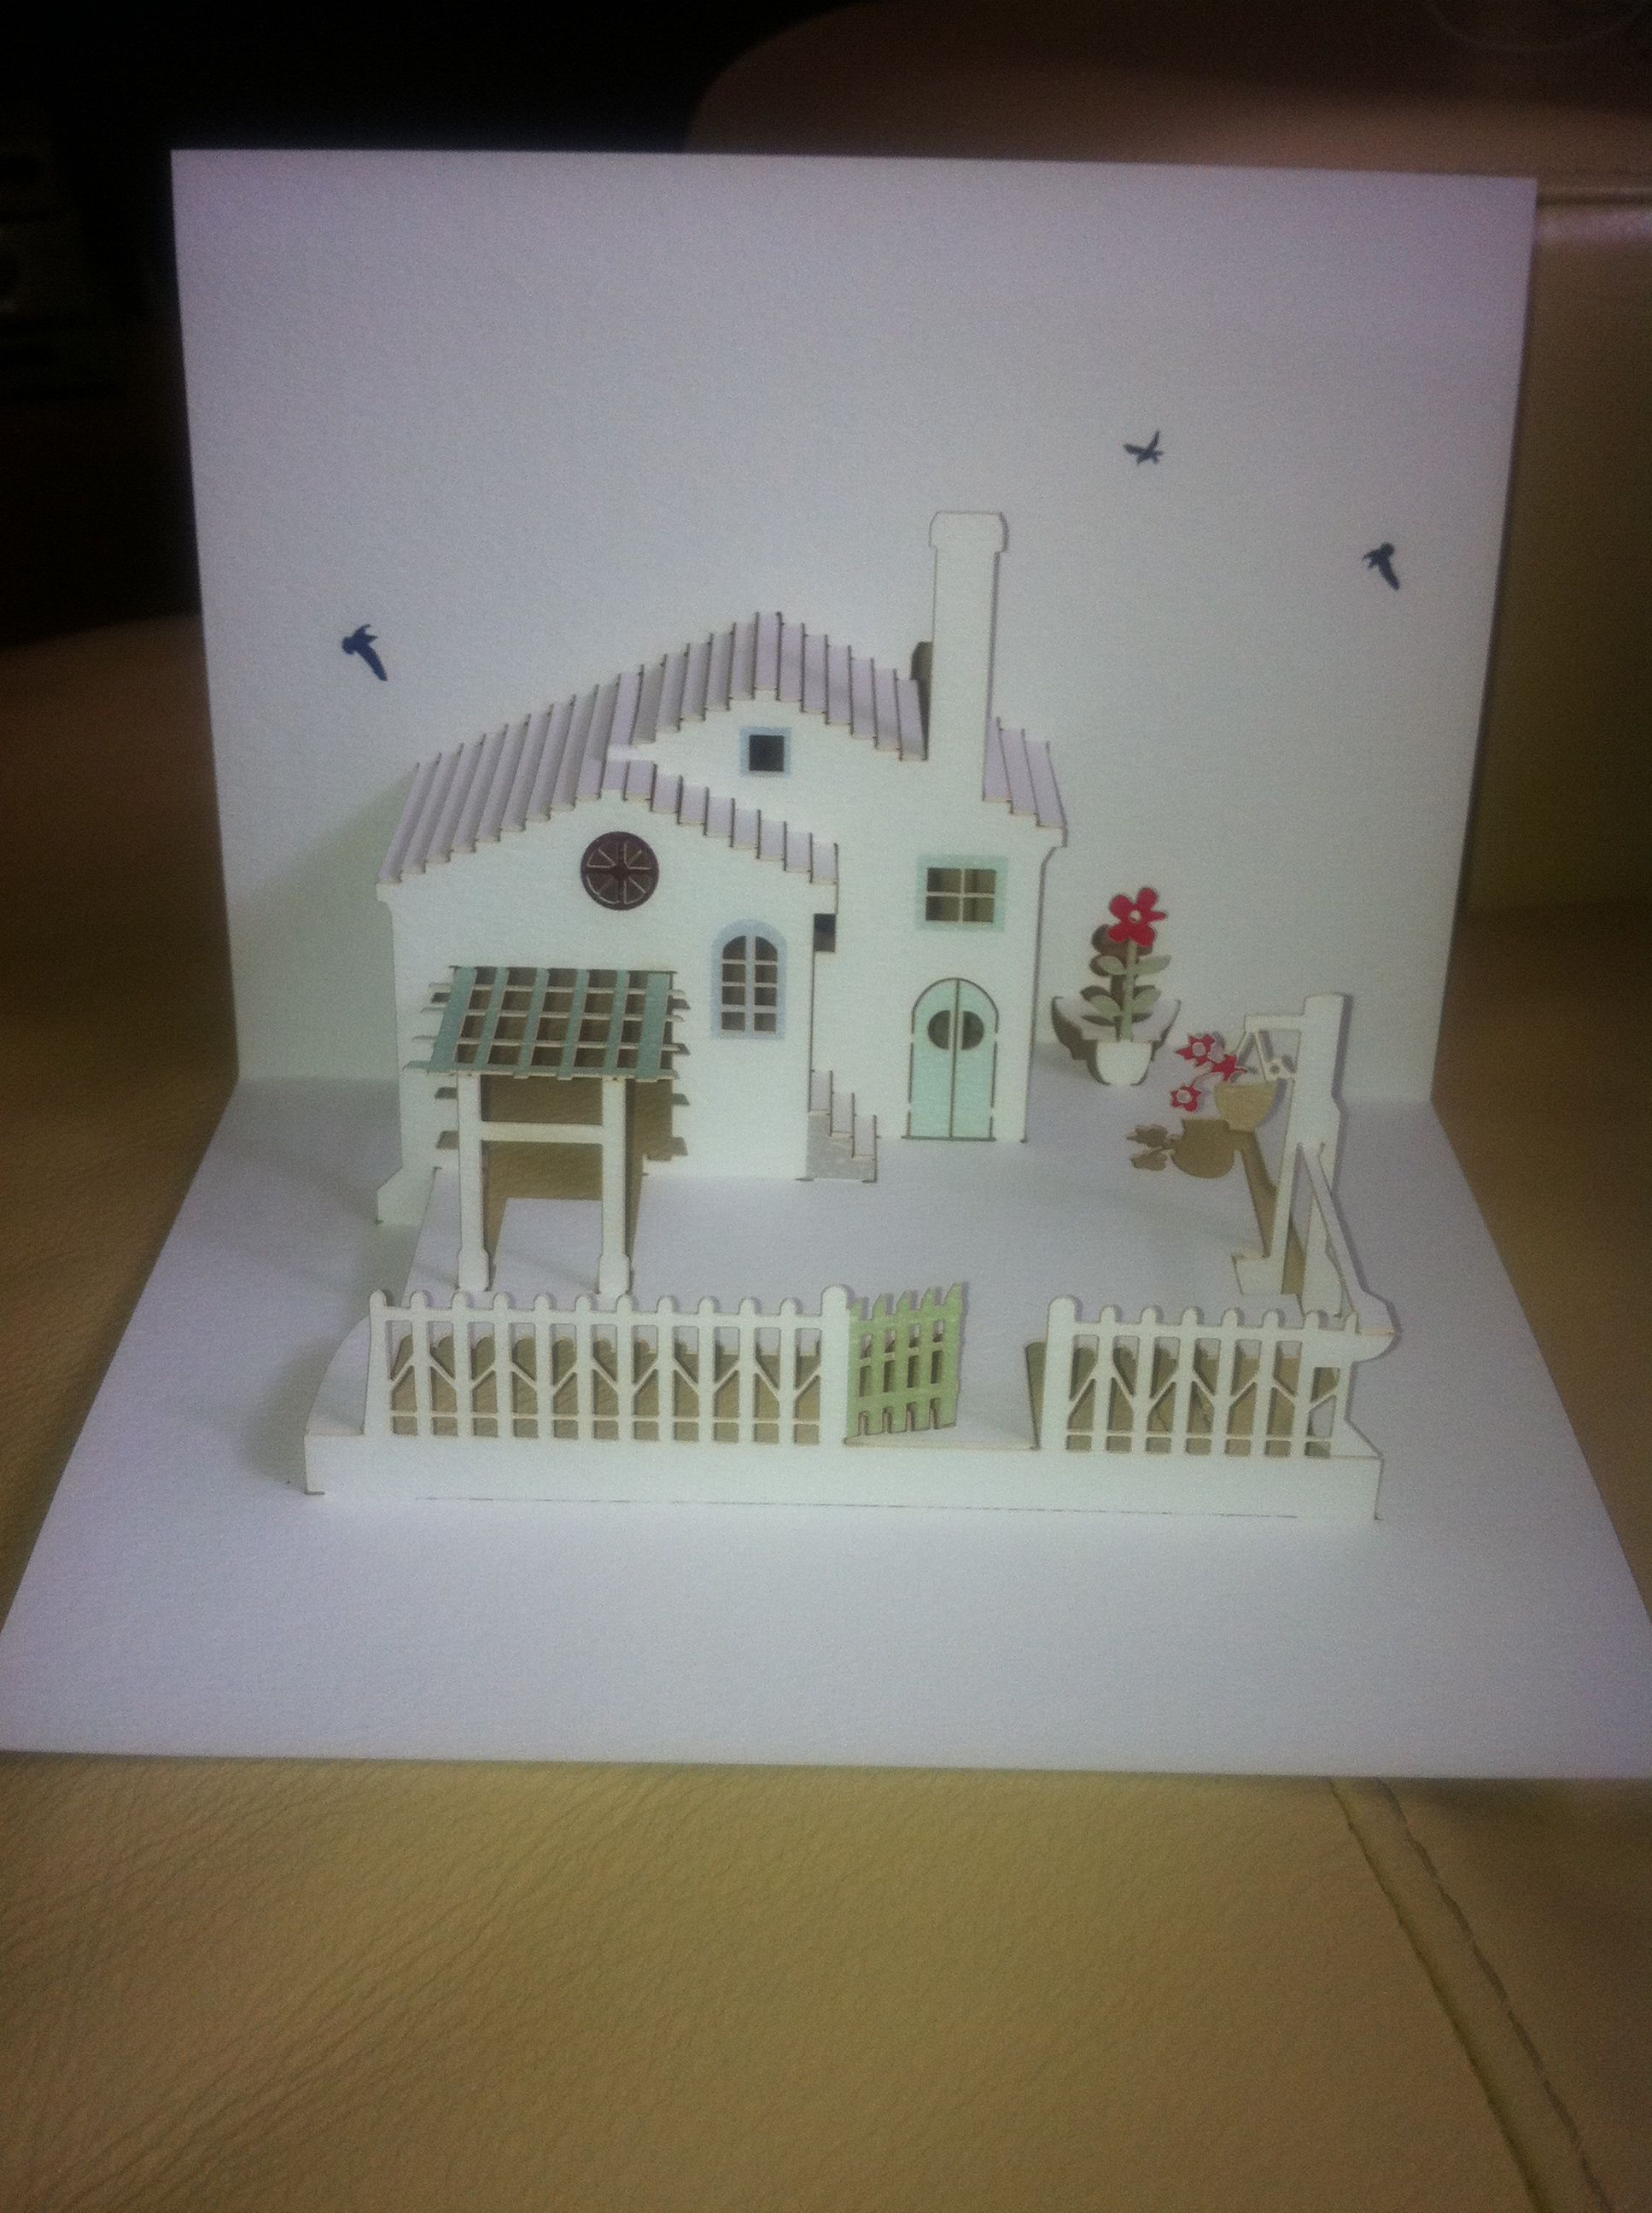 Pop Up Card For Folks 50th Wedding Anniversary Pop Up Art Pop Up Cards 50th Anniversary Cards